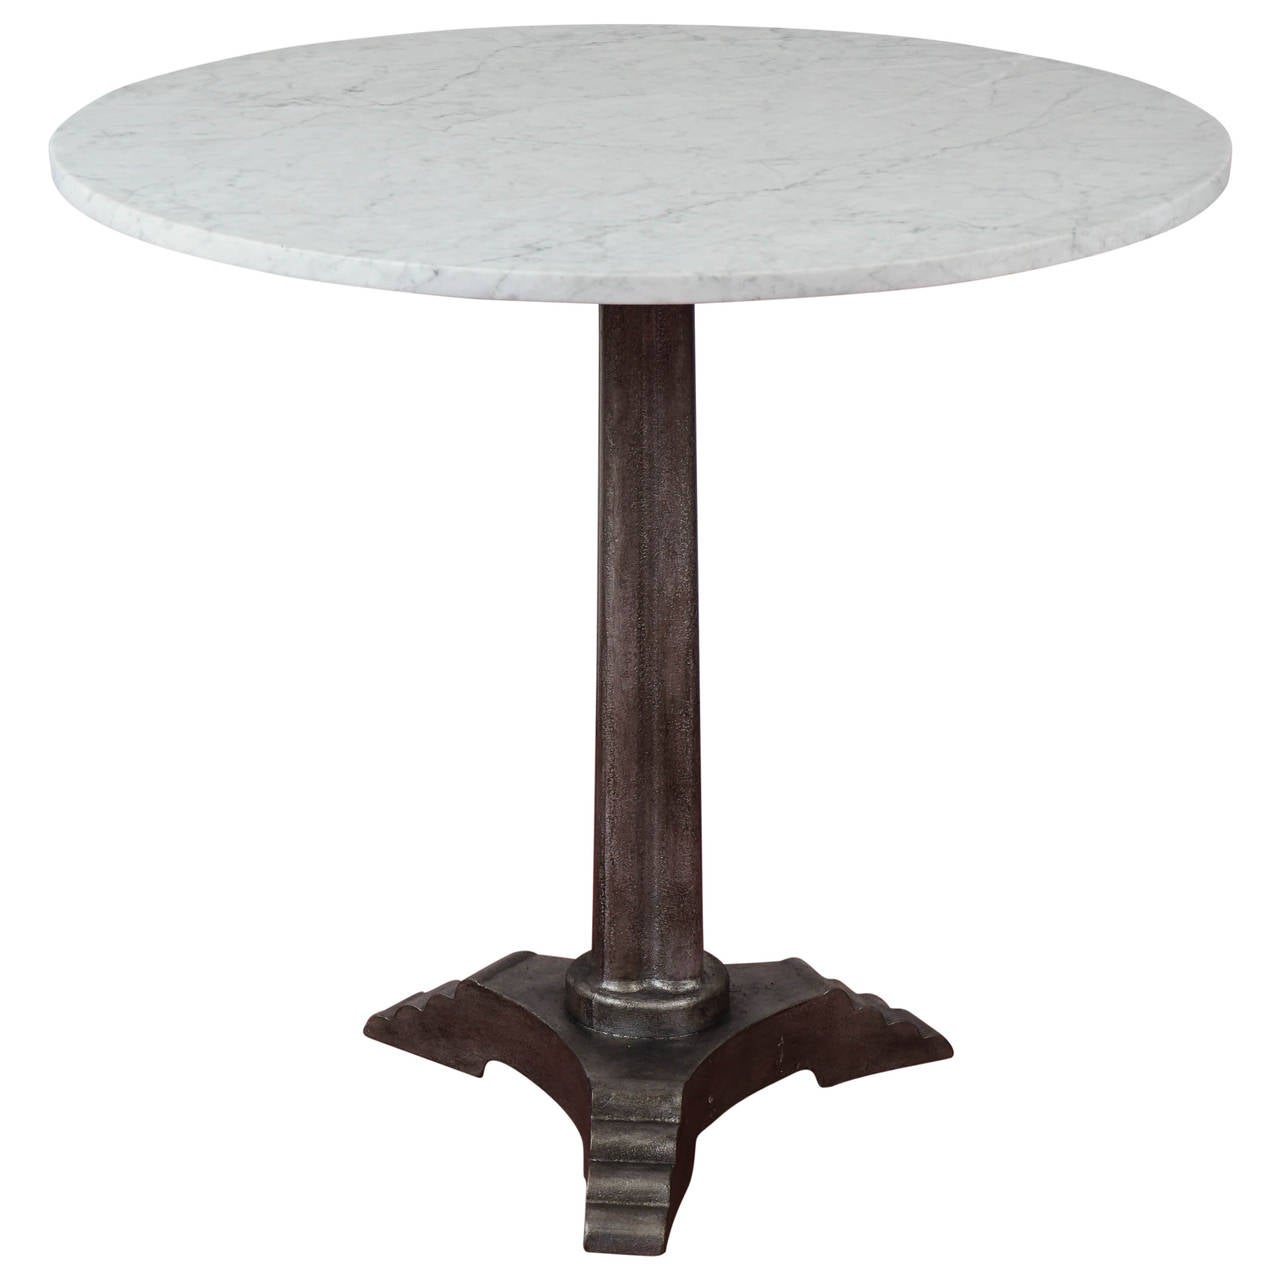 Marble Bistro Accent Table: French Art Deco Marble Top Bistro Cafe Table At 1stdibs